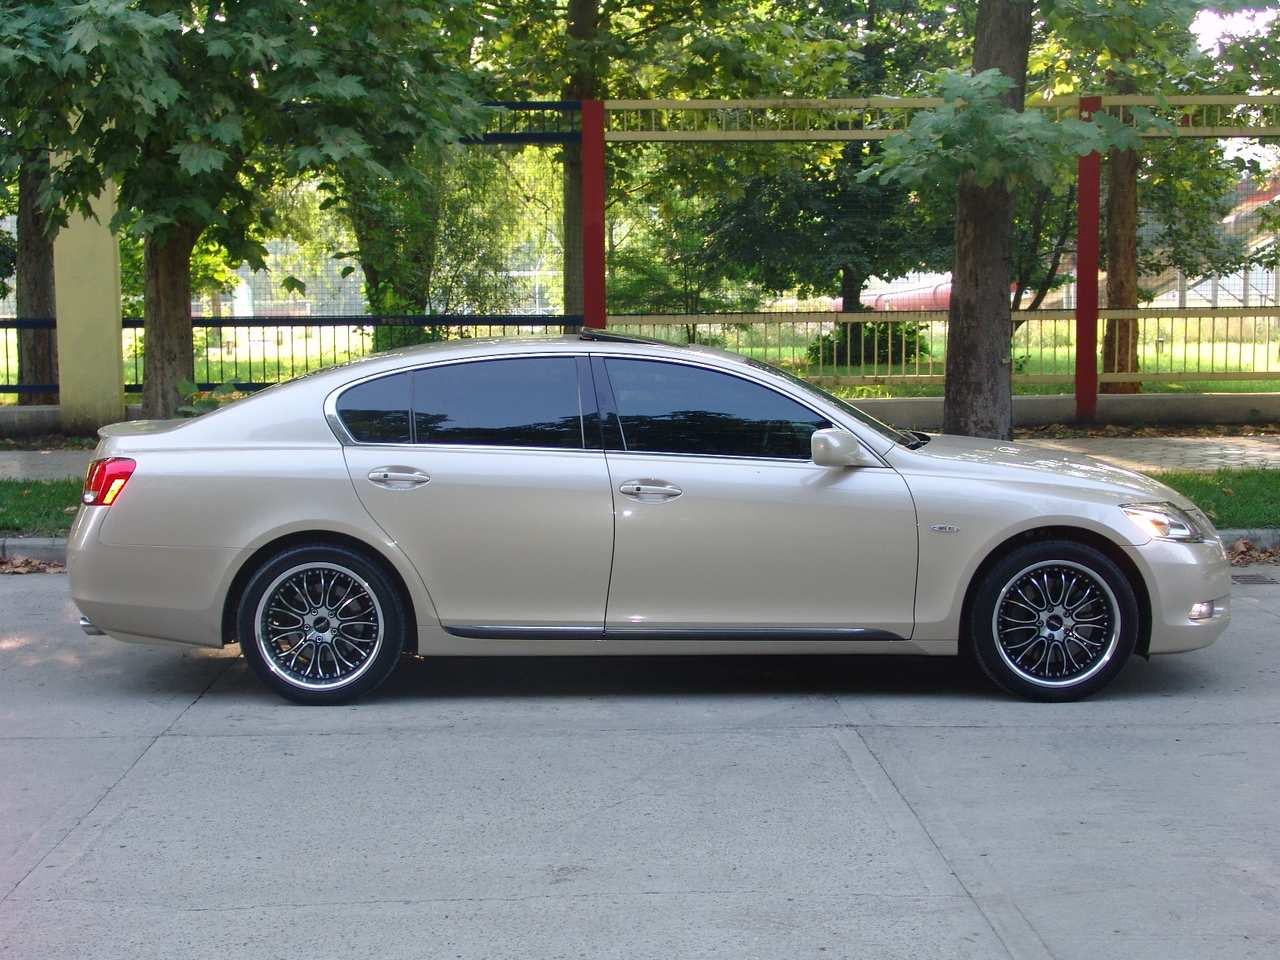 2006 lexus gs300 wallpapers gasoline fr or rr automatic for sale. Black Bedroom Furniture Sets. Home Design Ideas